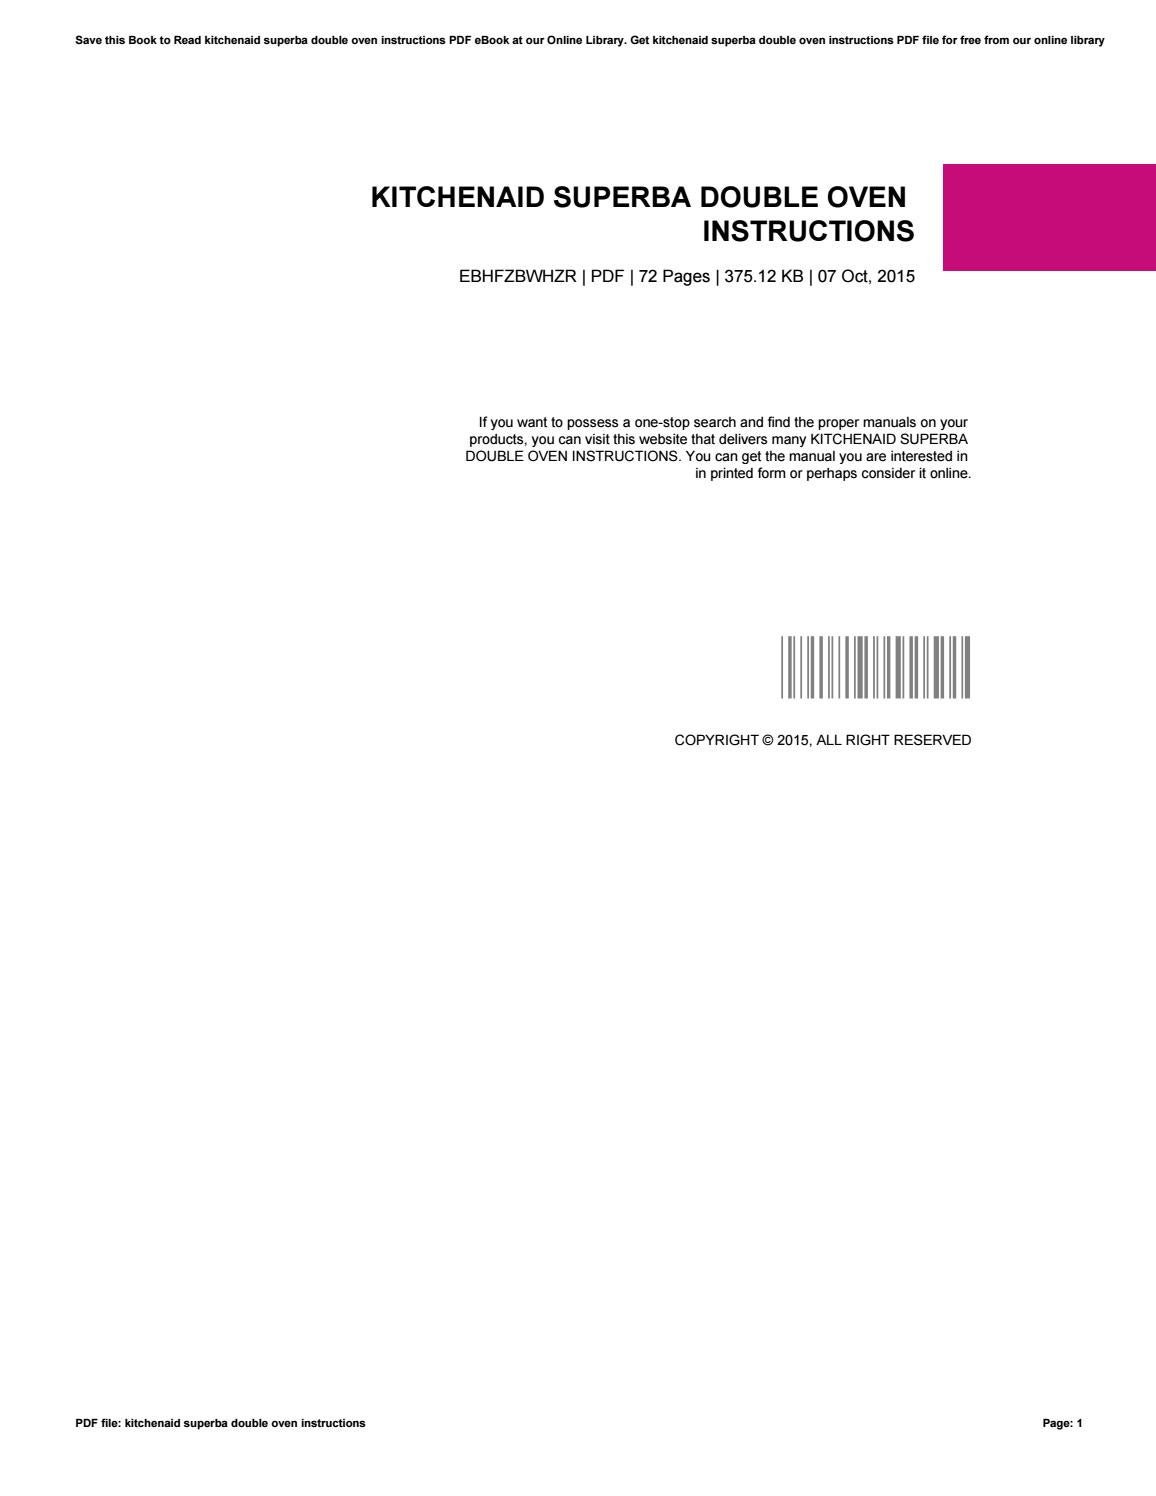 Kitchenaid Superba Double Oven Instructions By